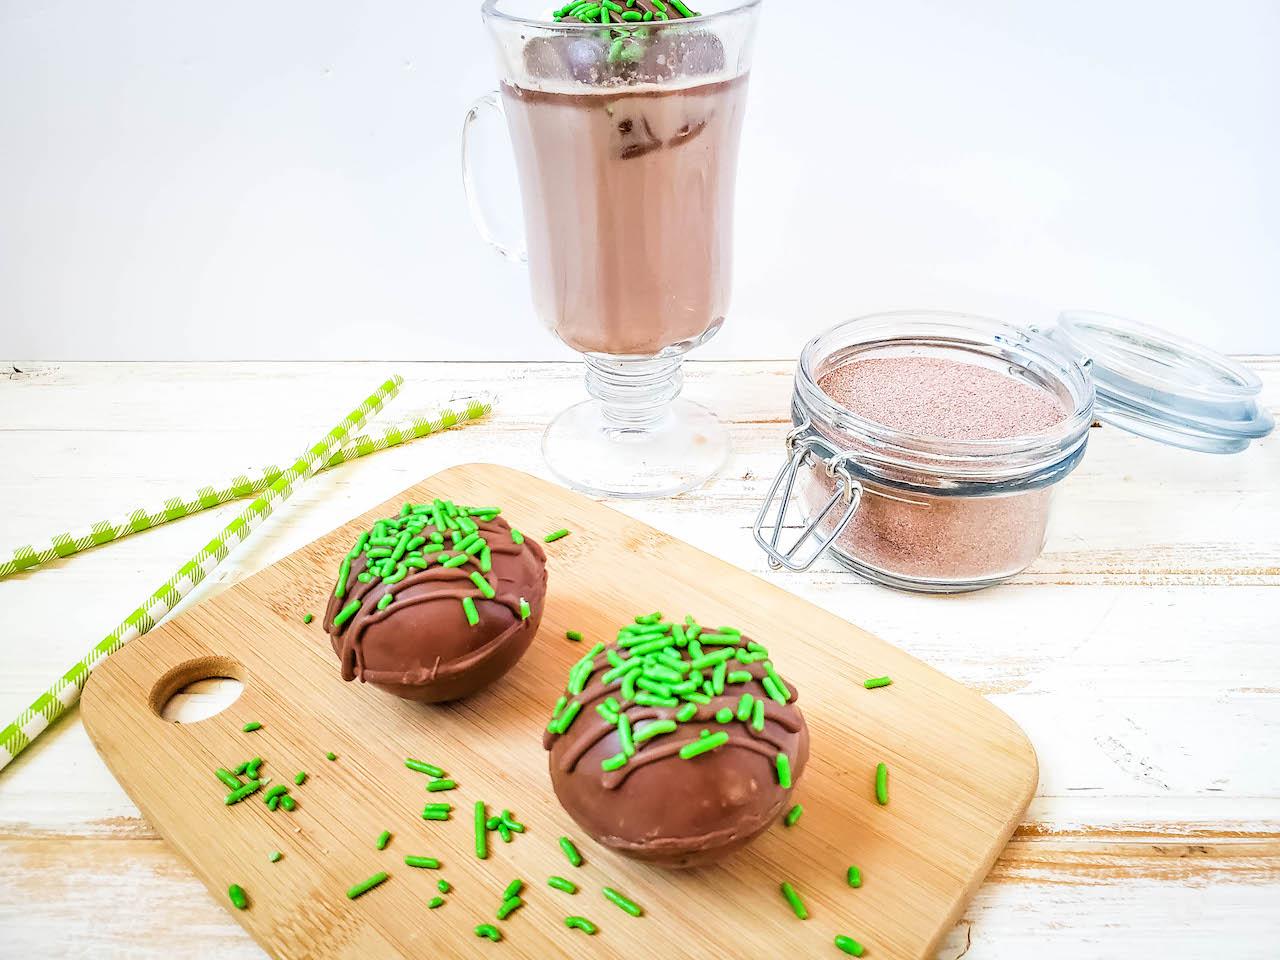 two hot cocoa bombs sitting on a wood cutting board with green sprinkles. A cup of hot cocoa and a glass jar of hot cocoa mix in the background, with two green striped straws